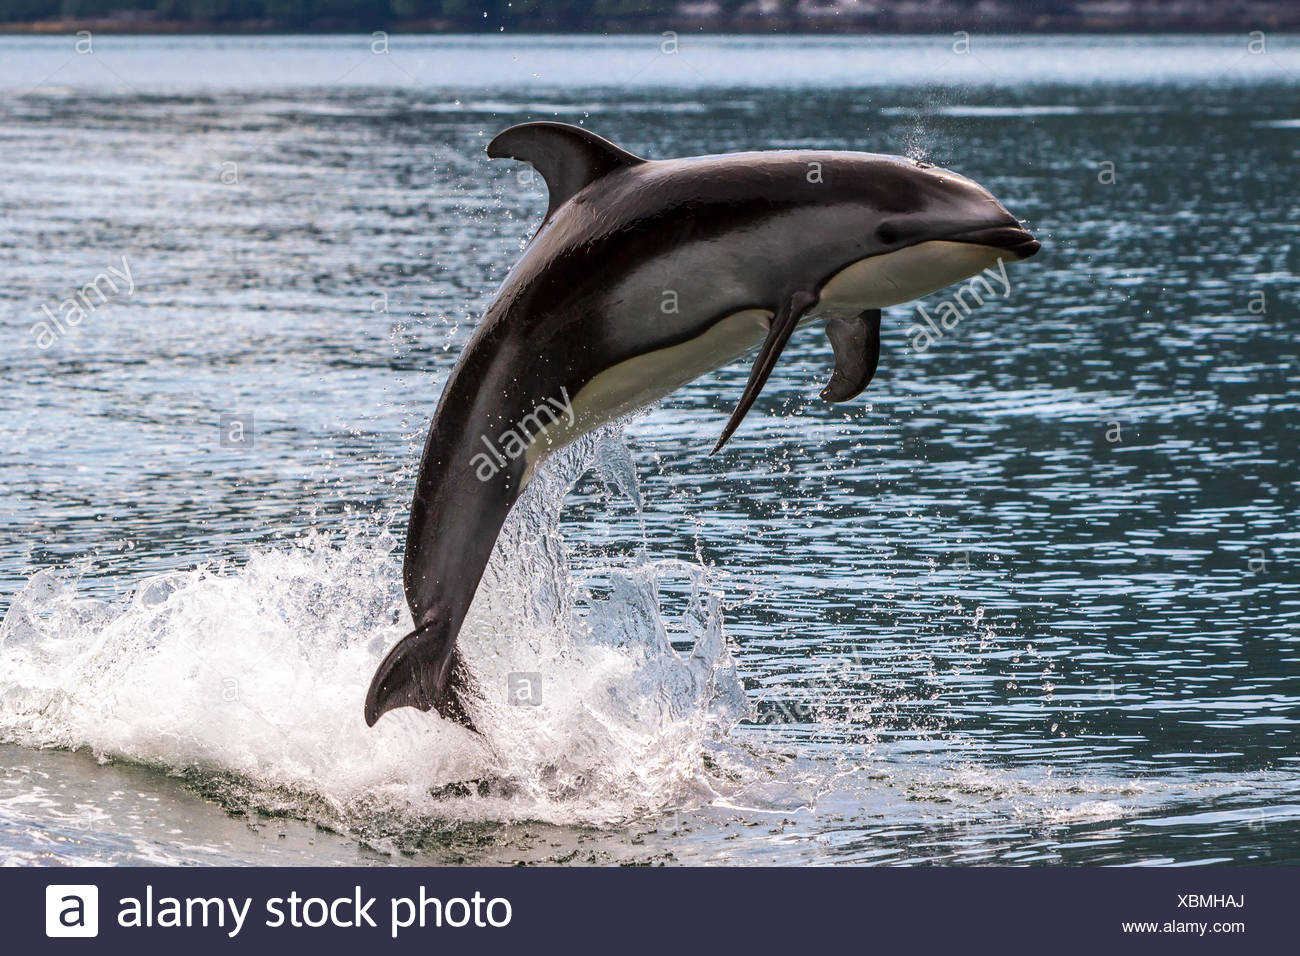 Pacific White Sided Dolphin (Lagenorhynchus obliquidens) jumping in Broughton Archipelago Marine Park in British Columbia - Stock Image